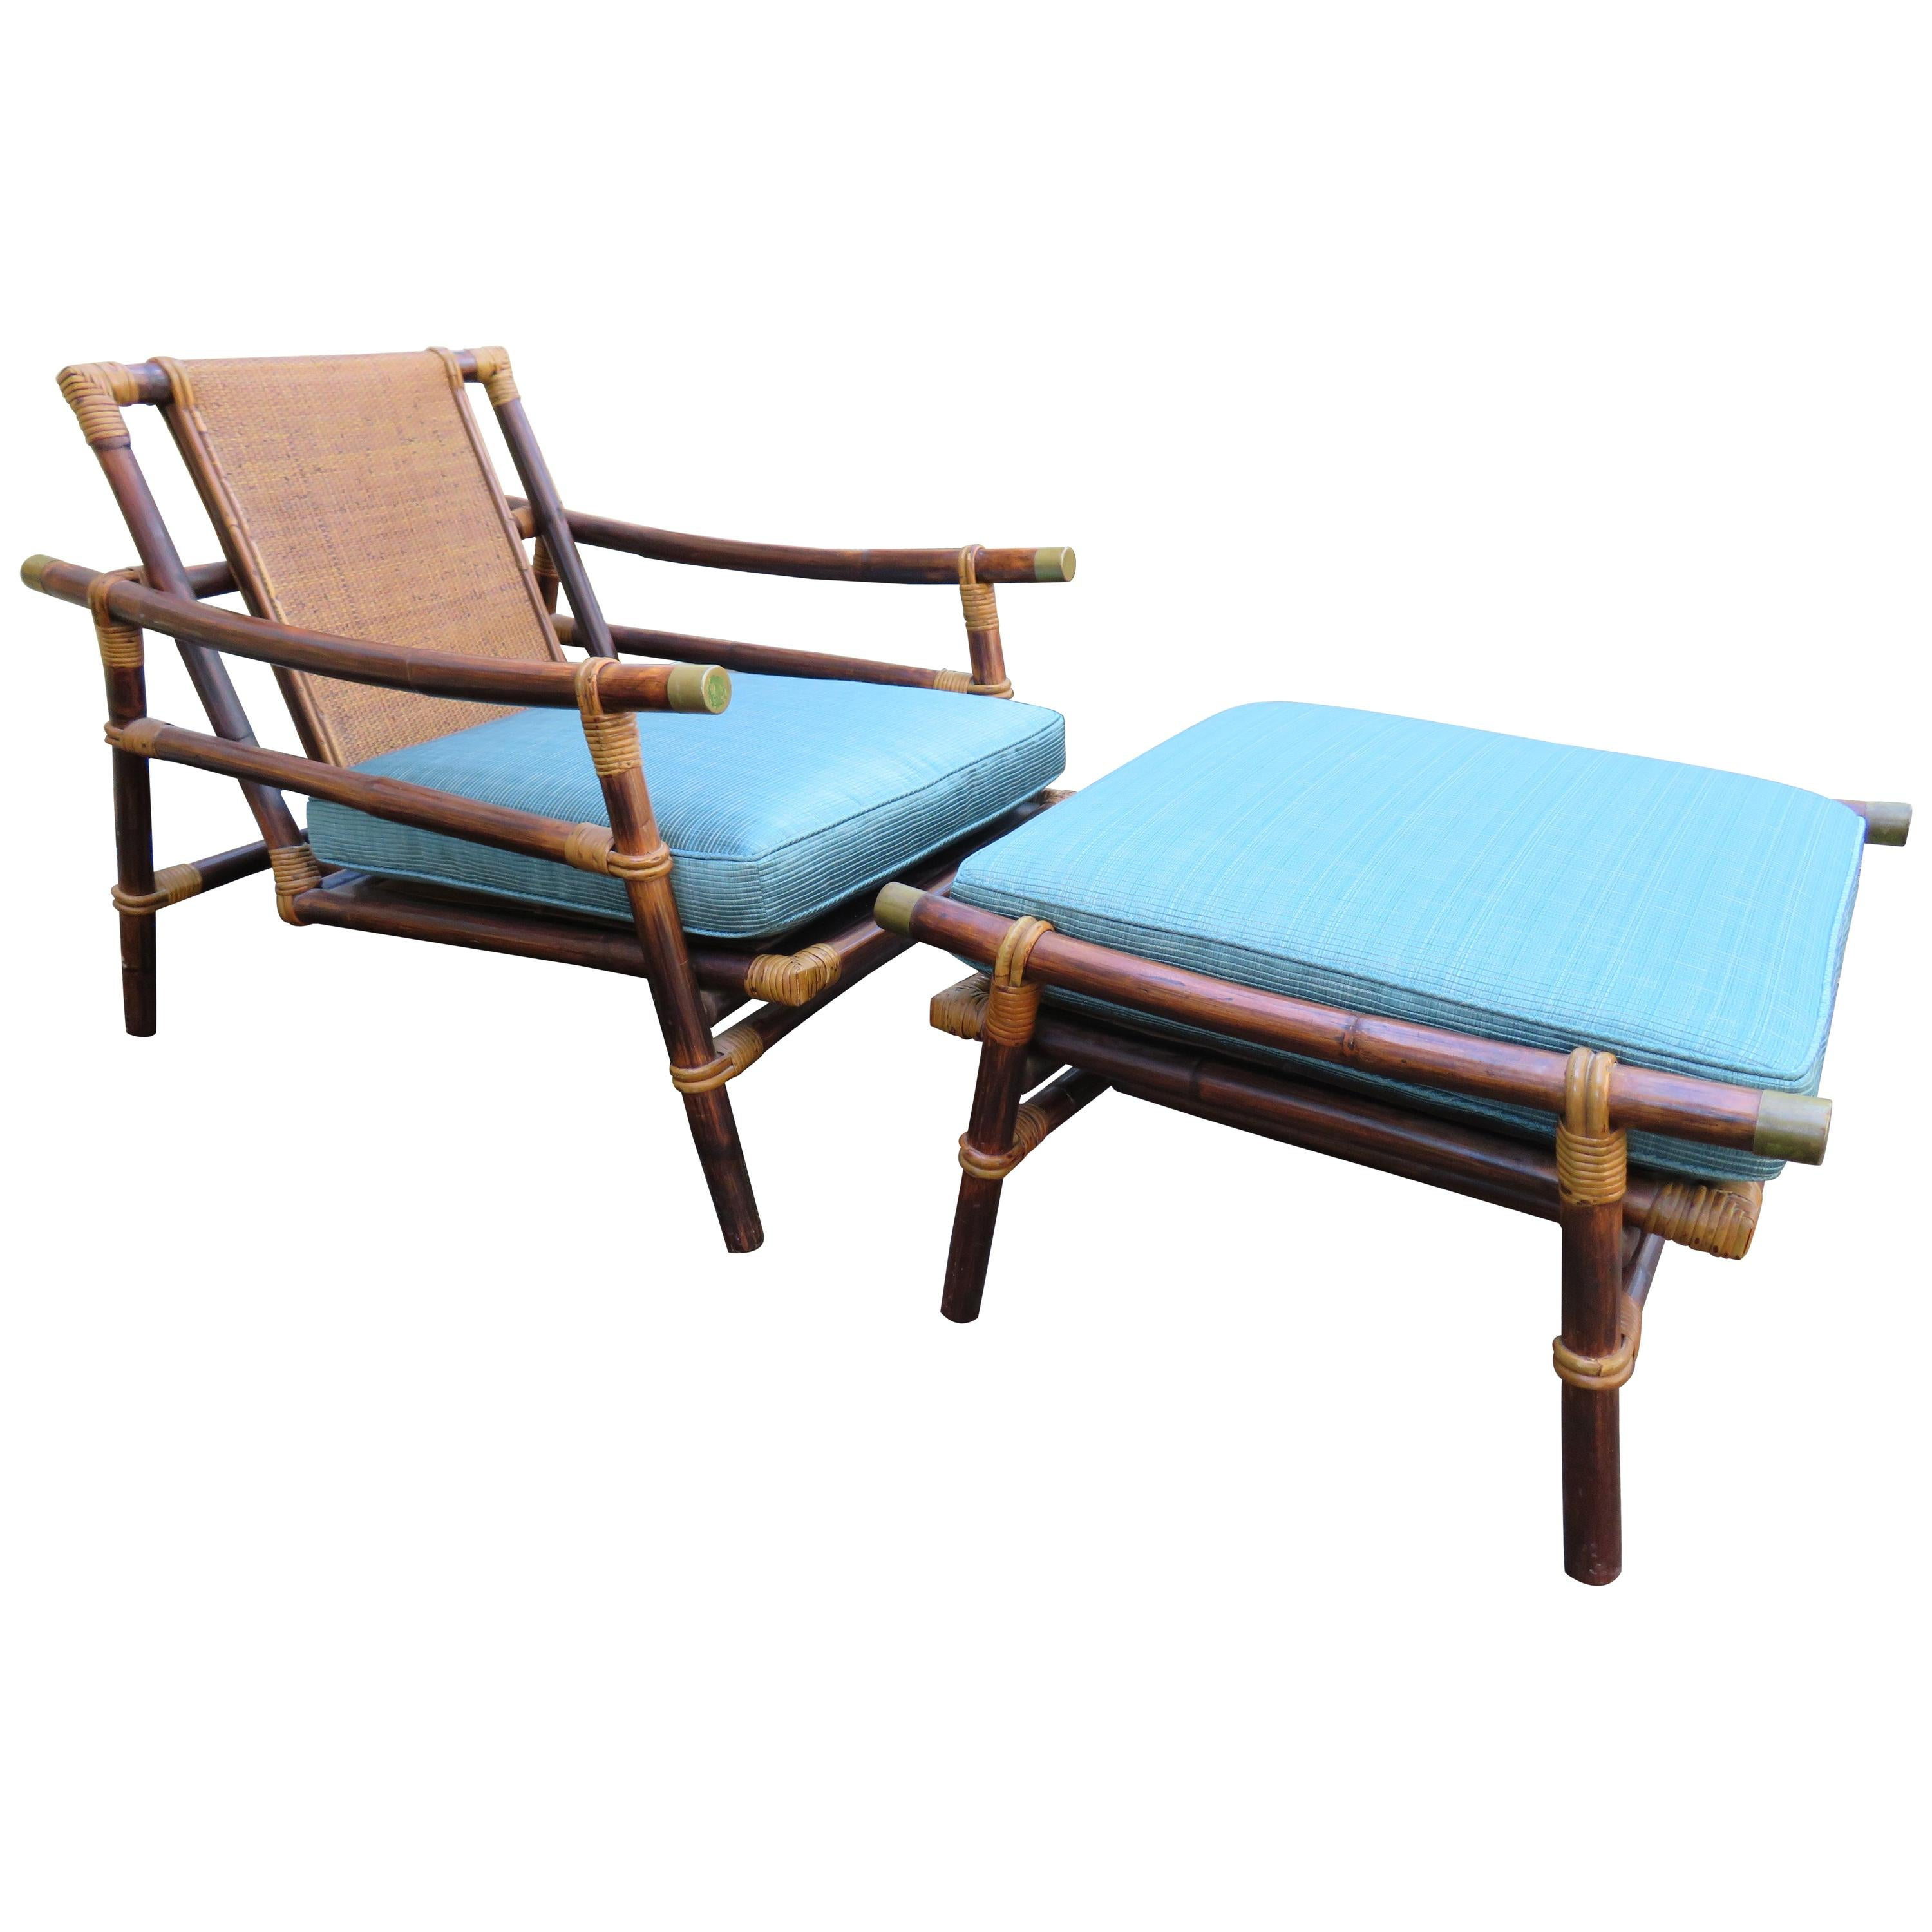 Ficks Reed Rattan Lounge Club Chair Ottoman by John Wisner Campaign Style